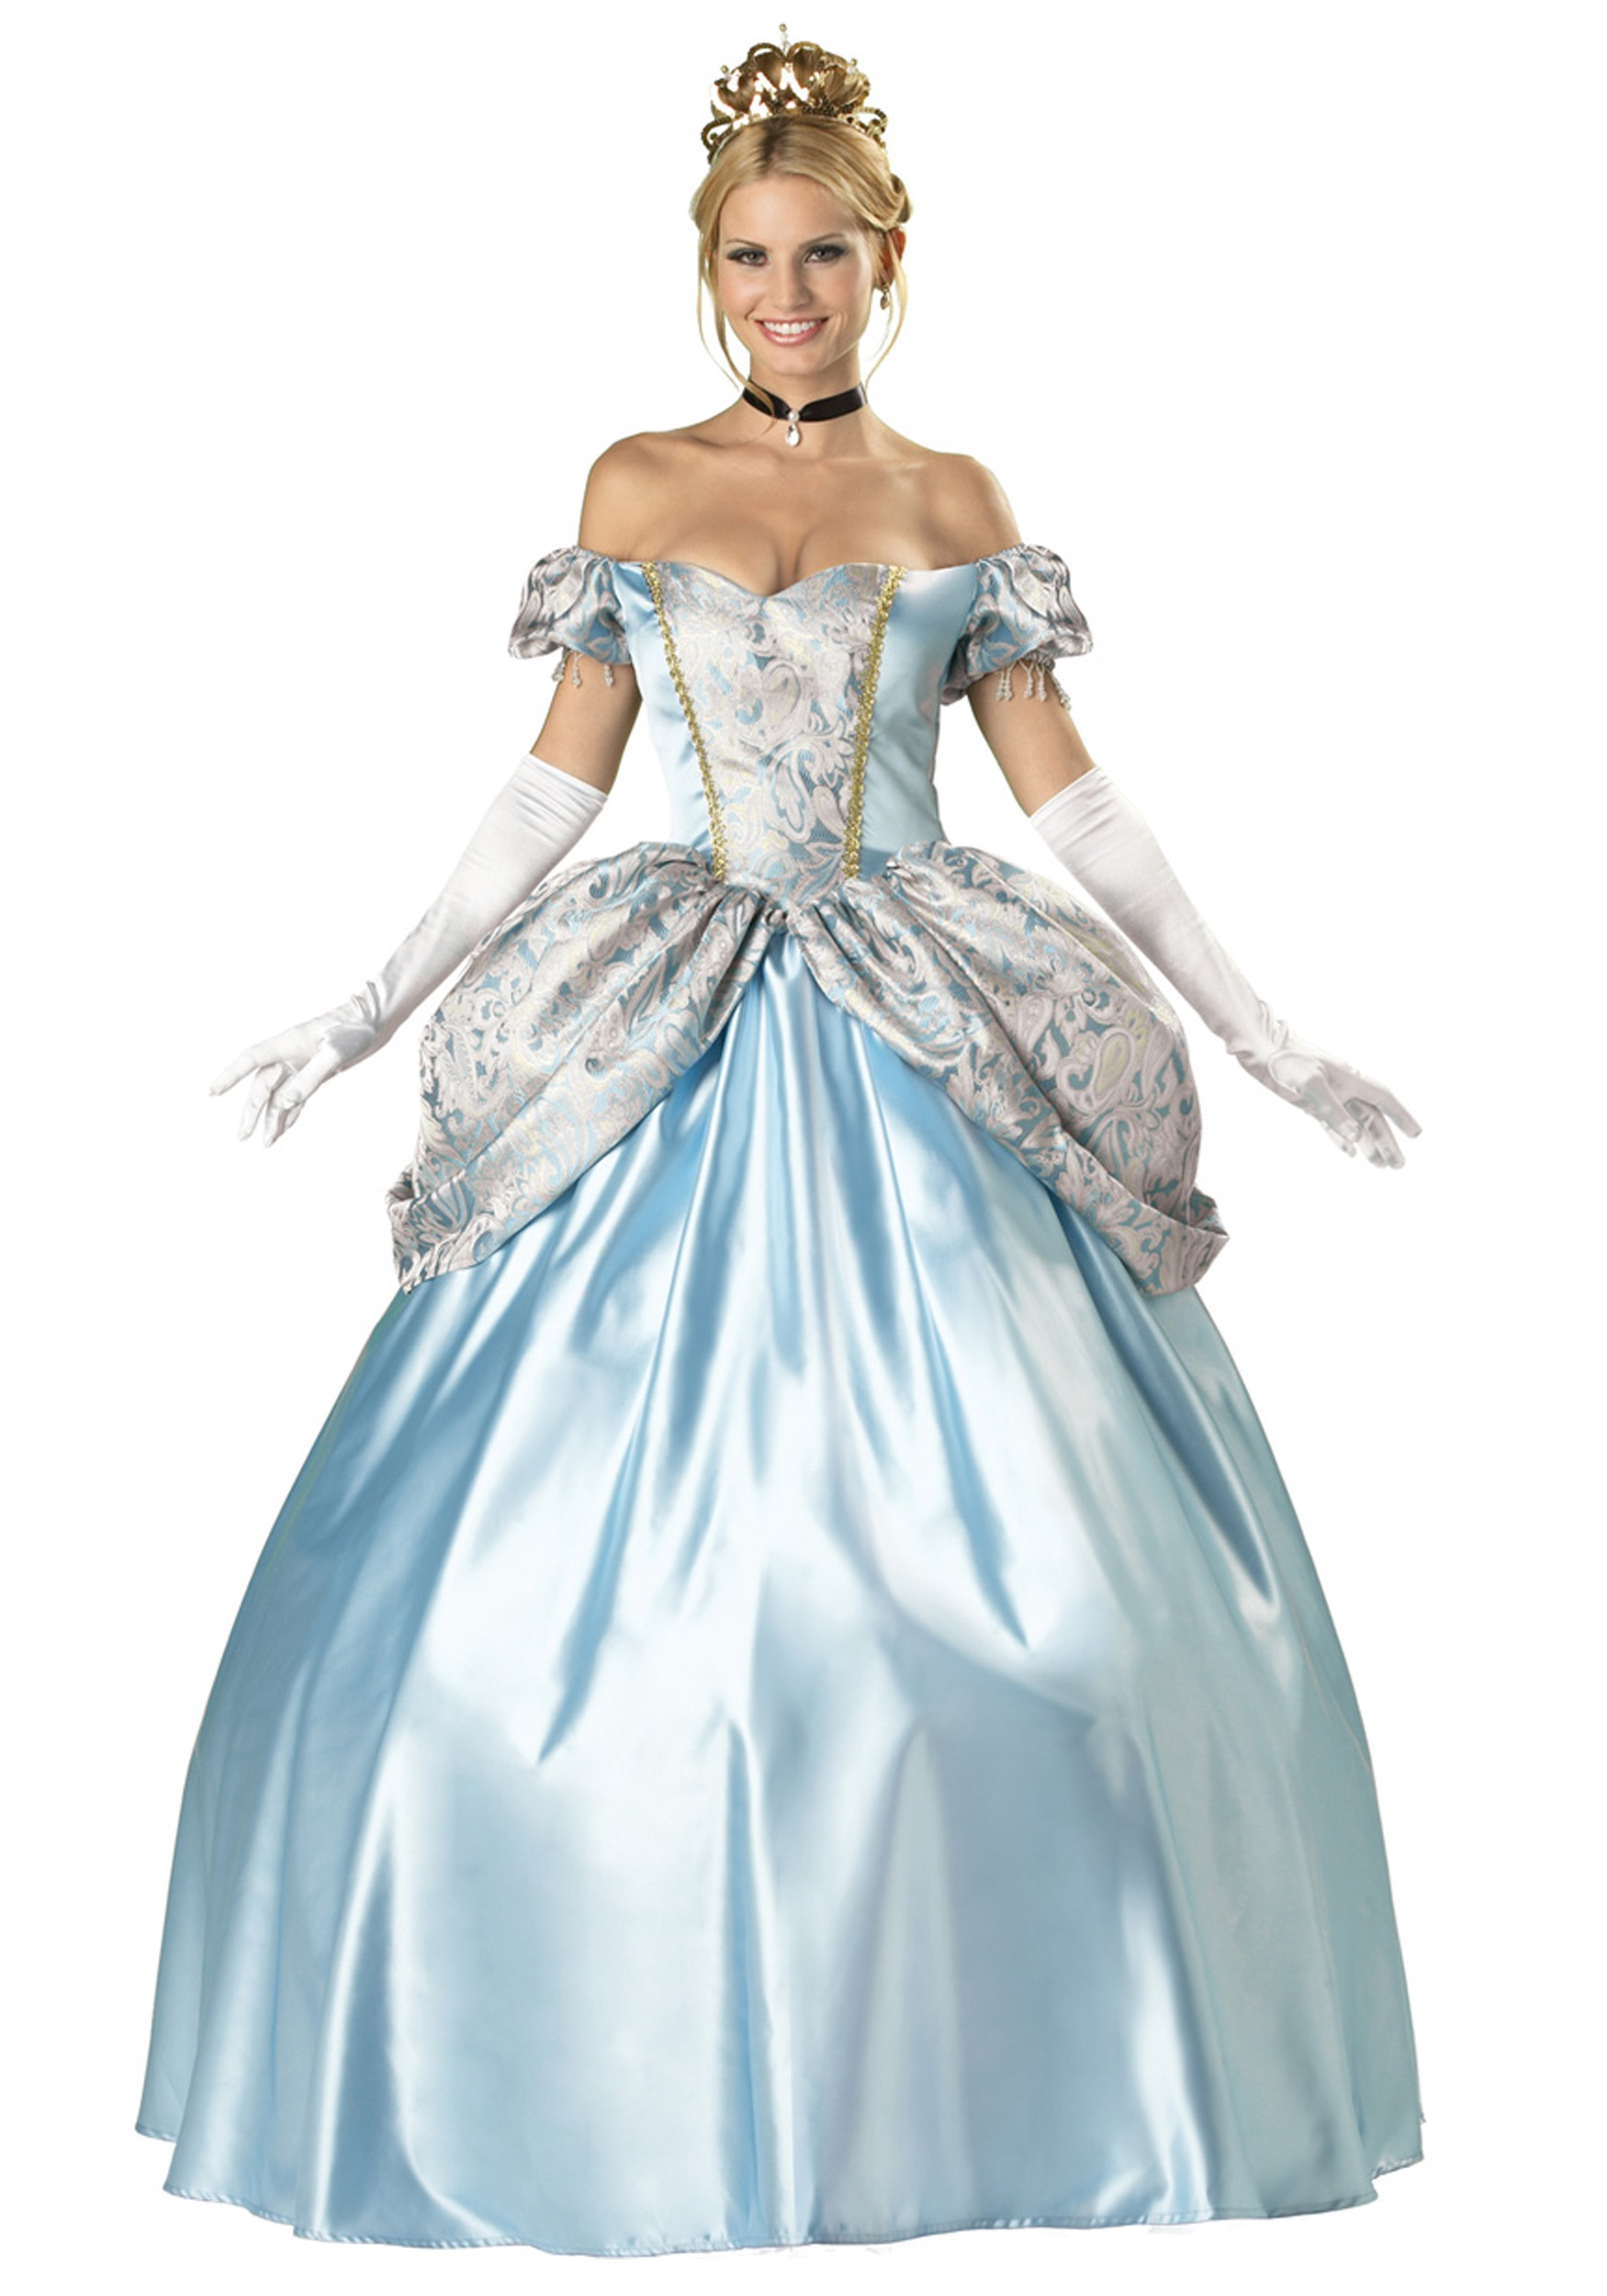 Elite Princess Ball Gown  sc 1 st  Halloween Costume & Princess Costumes - Adult Child Princess Costume